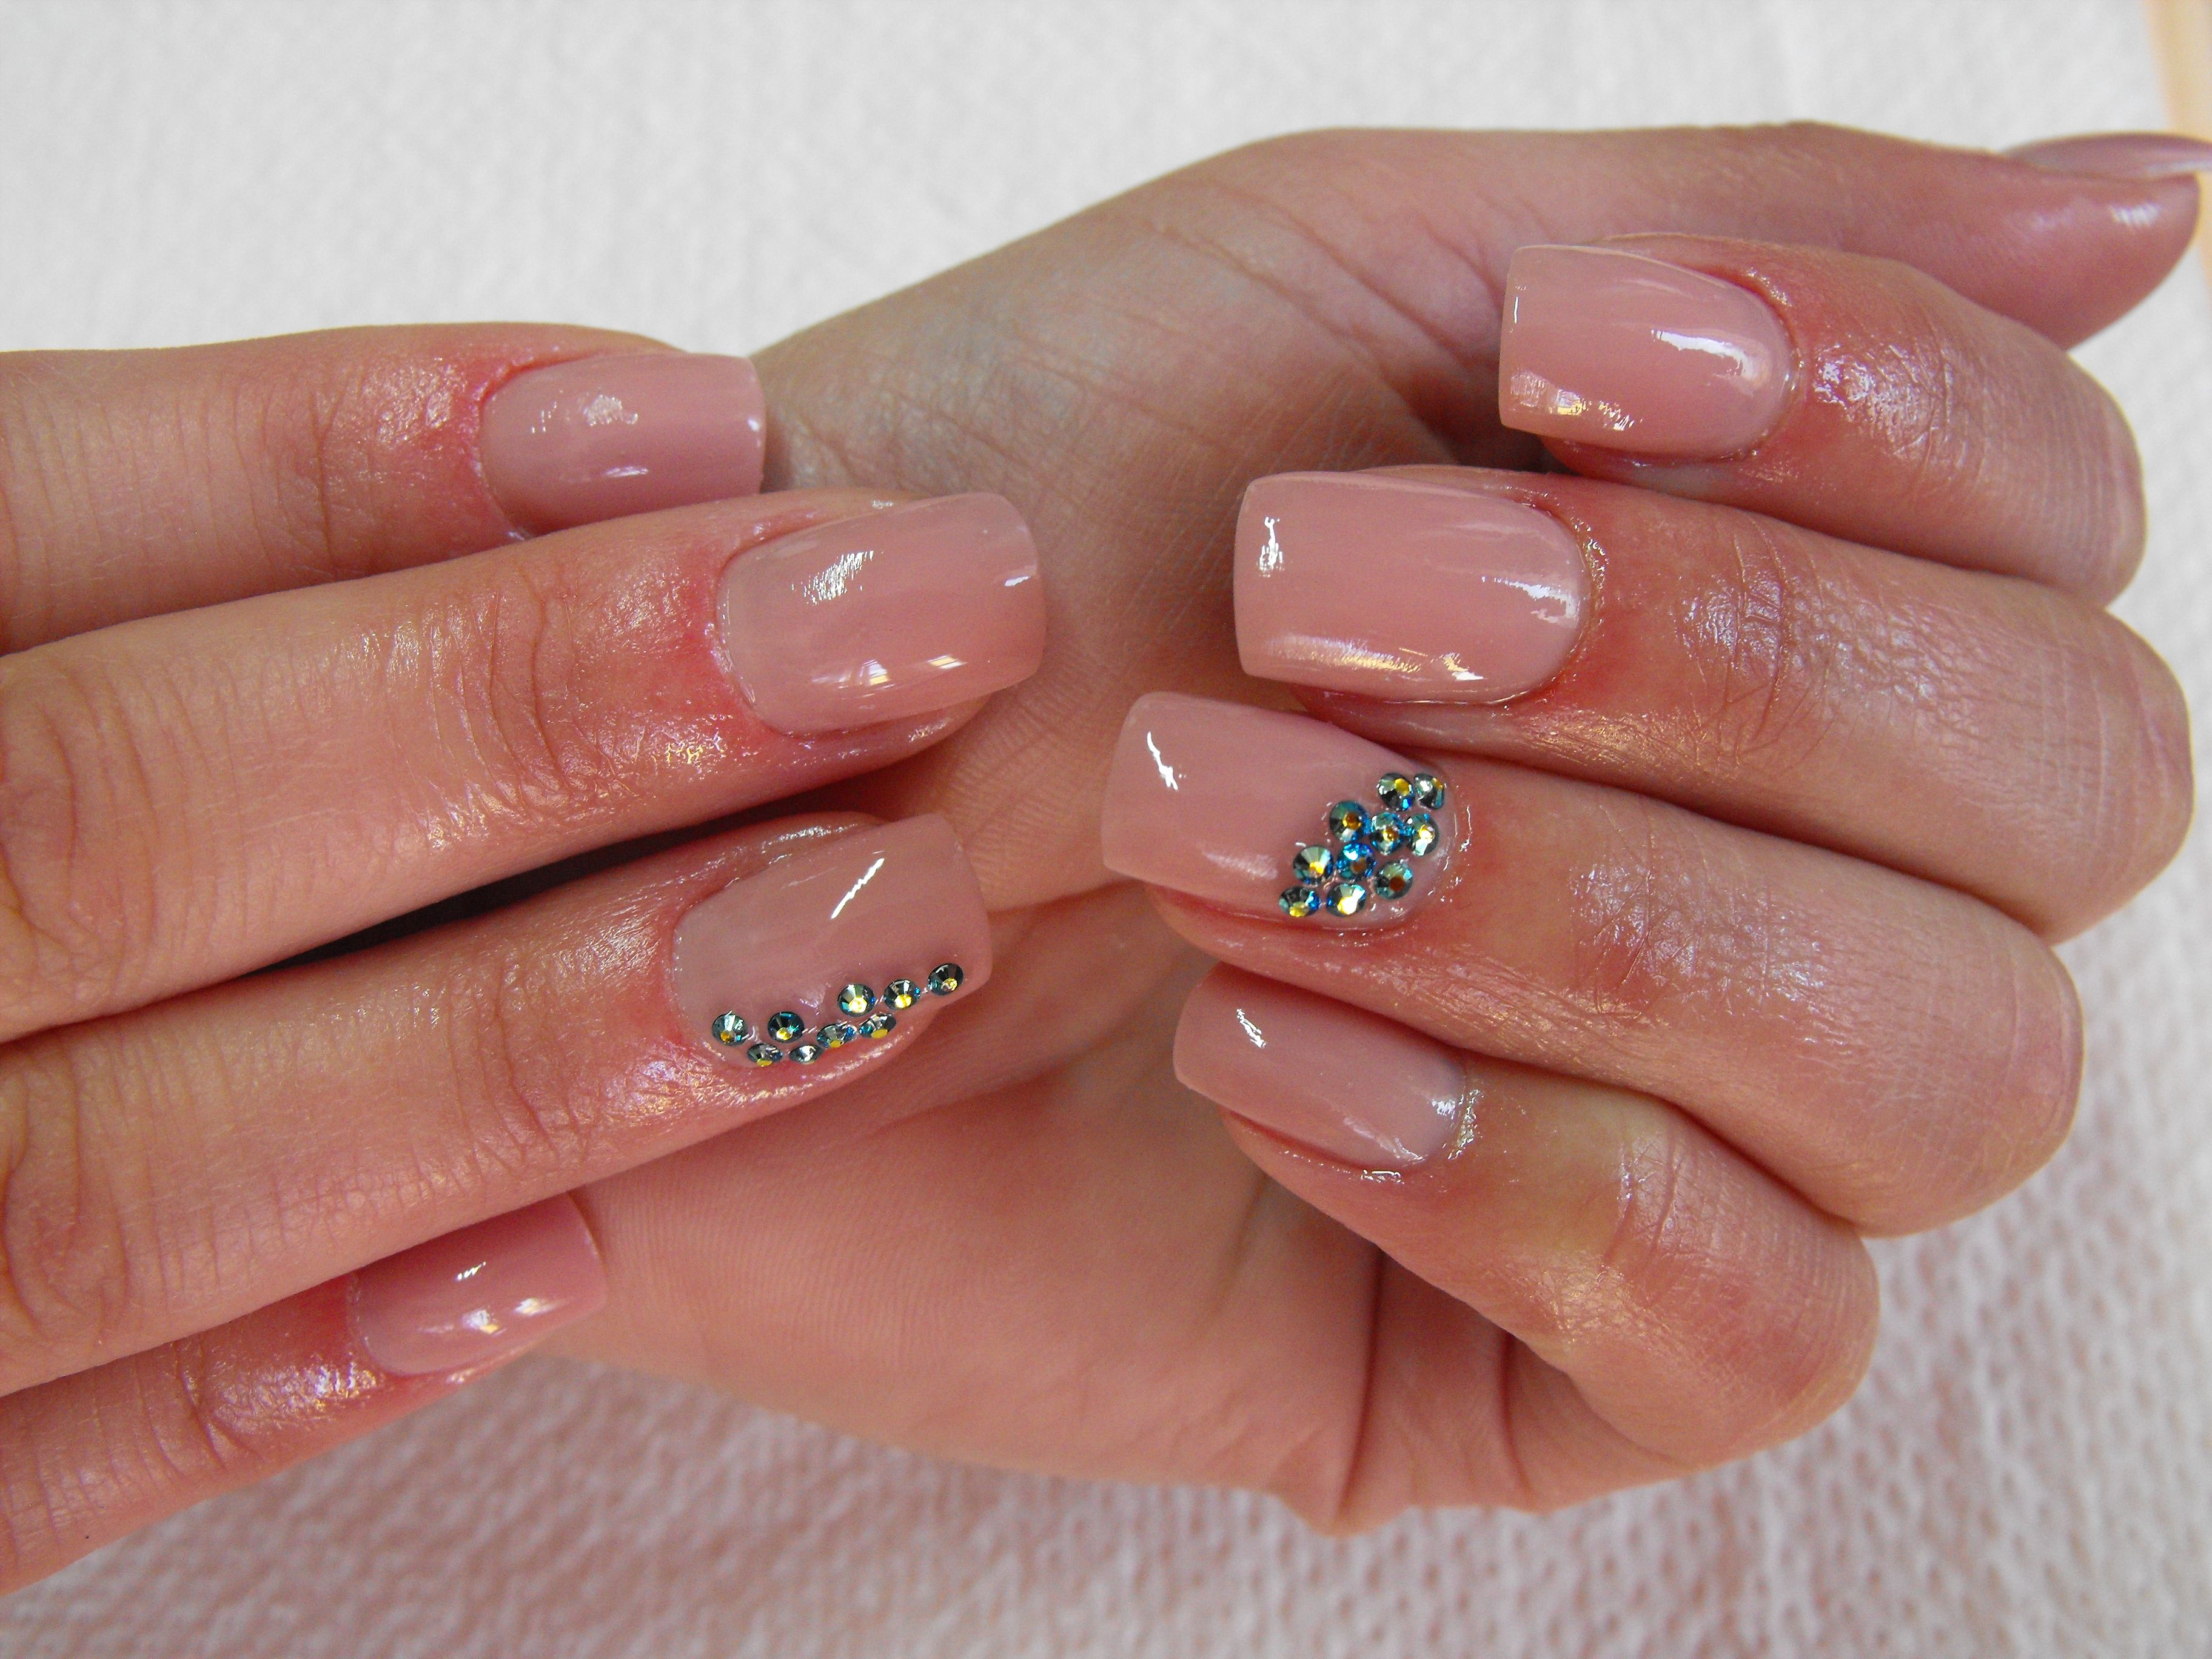 natural looking #nails made with uv gels